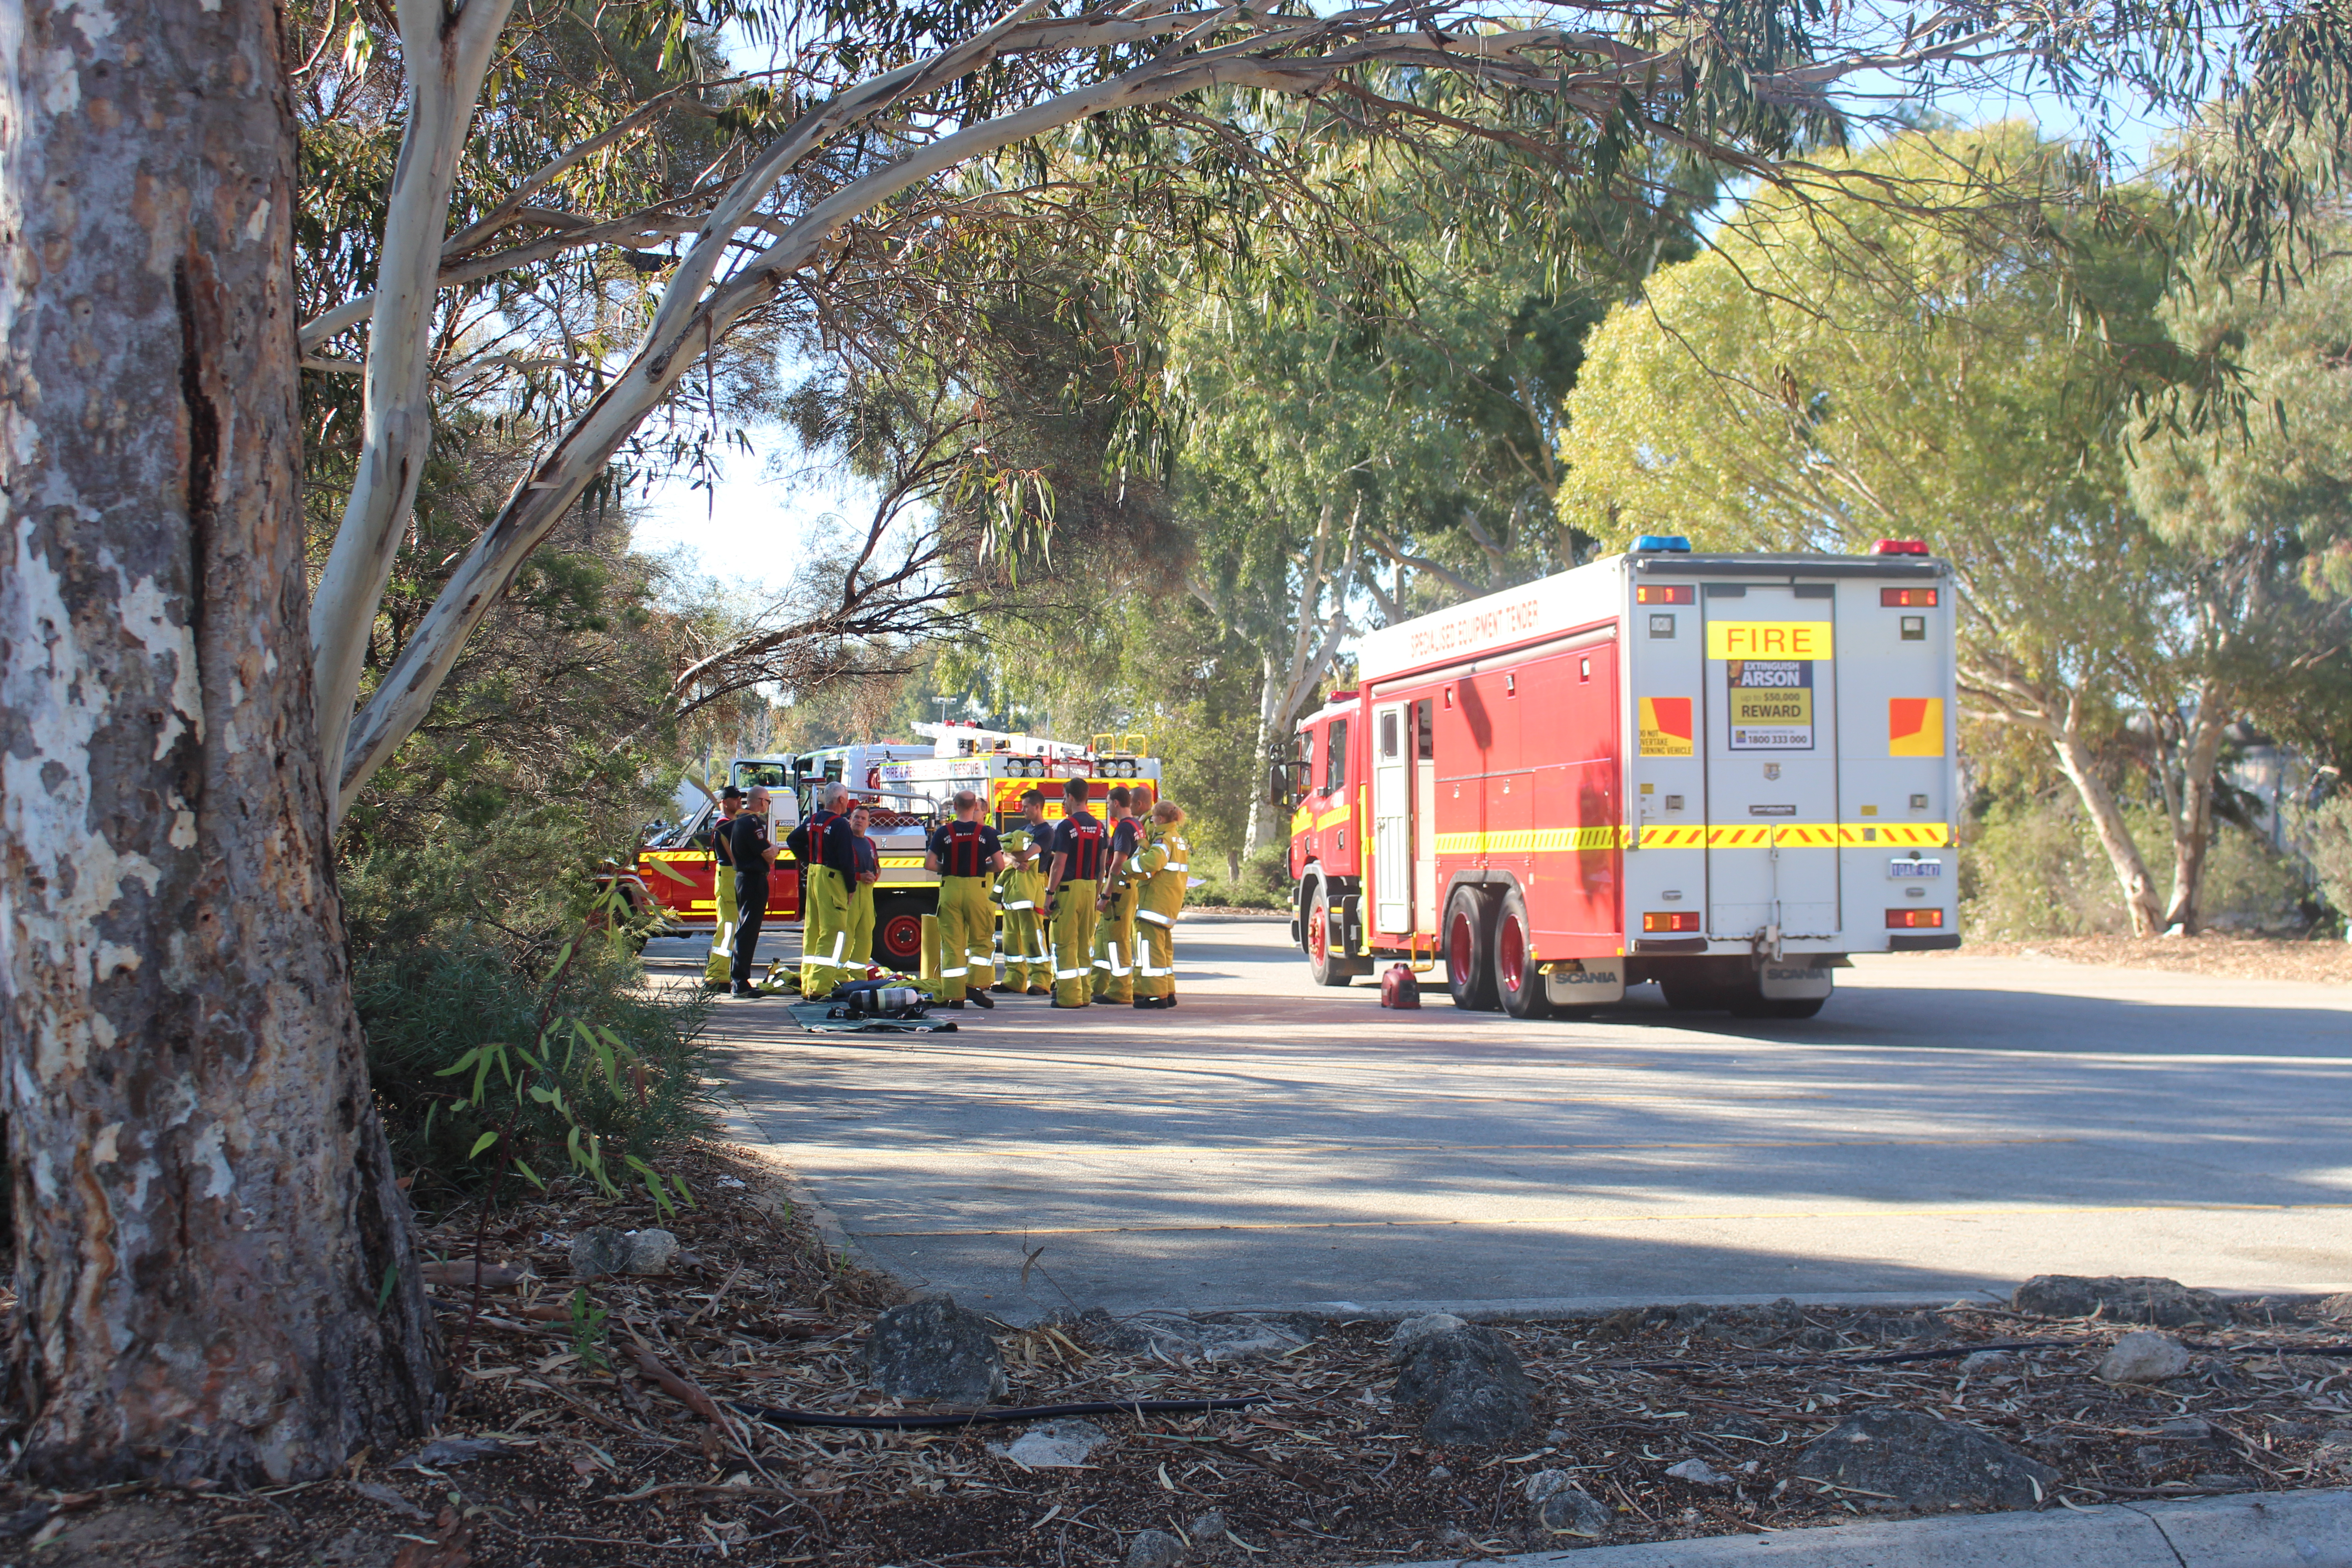 DFES attending a chemical spill in a science building at the Tafe campus in Murdoch. Photo: Jaime Shurmer